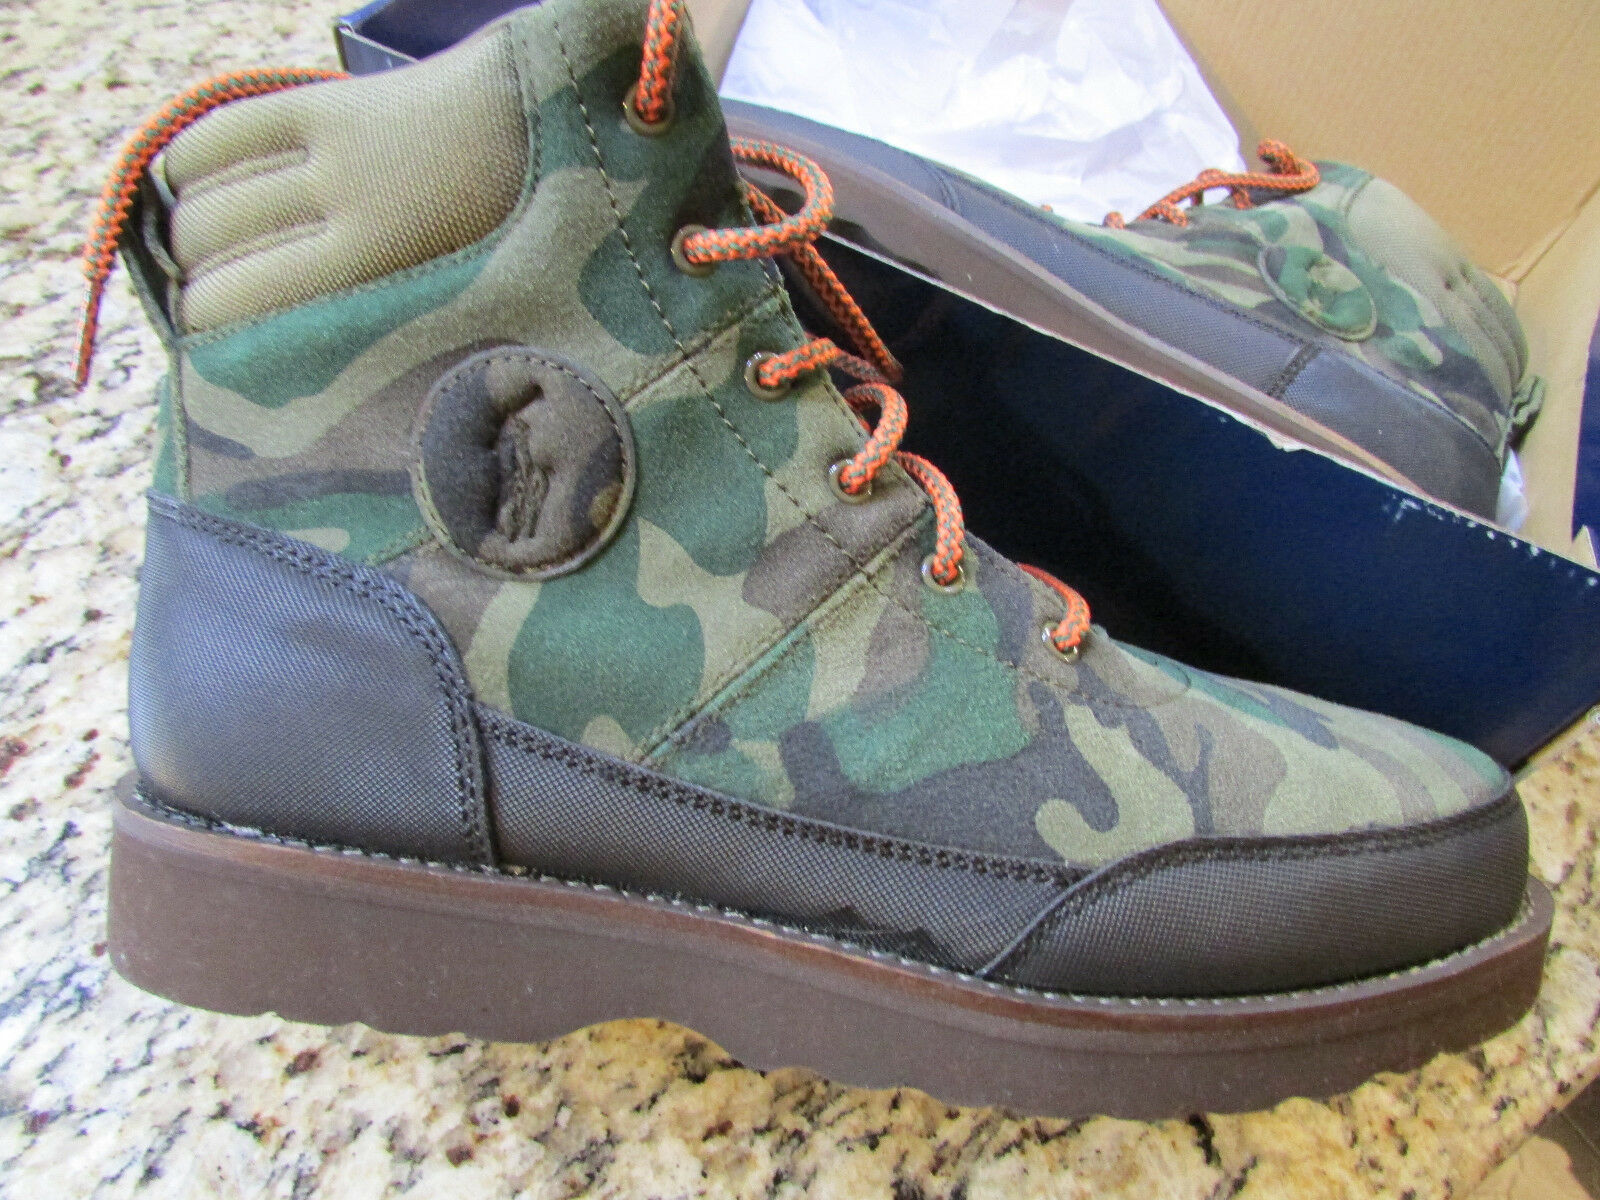 NEW POLO RALPH LAUREN BEARSTED CHUKKA BOOTS SHOES MENS 9.5 ANKLE BOOTS OLIVE